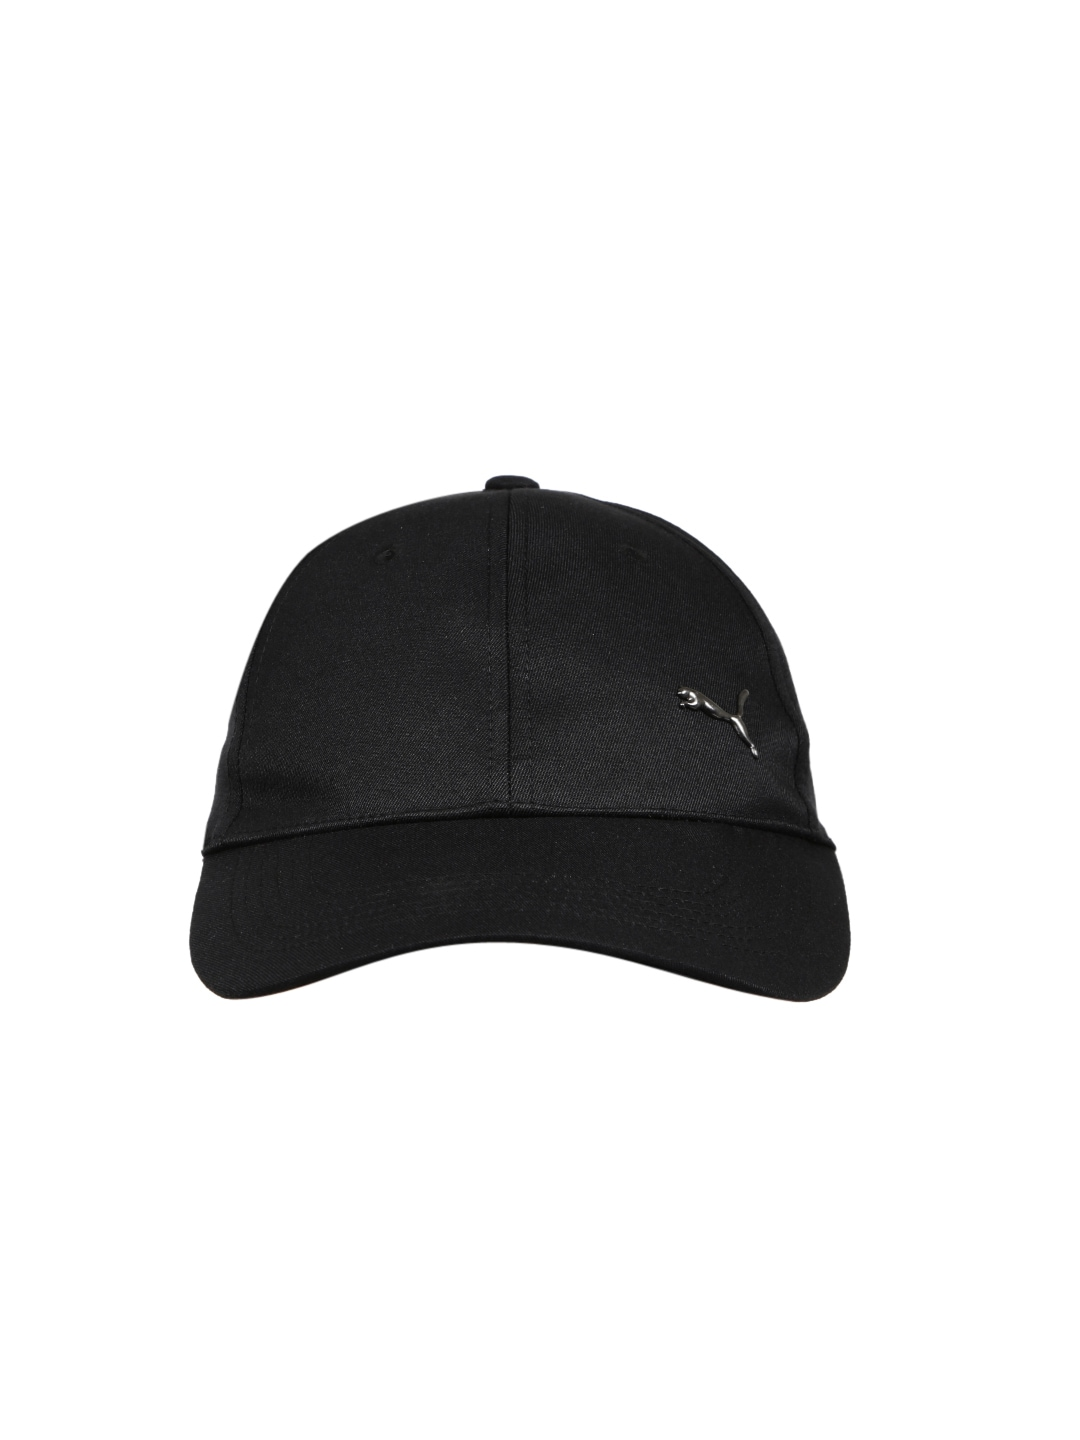 Unisex Caps - Buy Unisex Caps online in India c0812b801ec